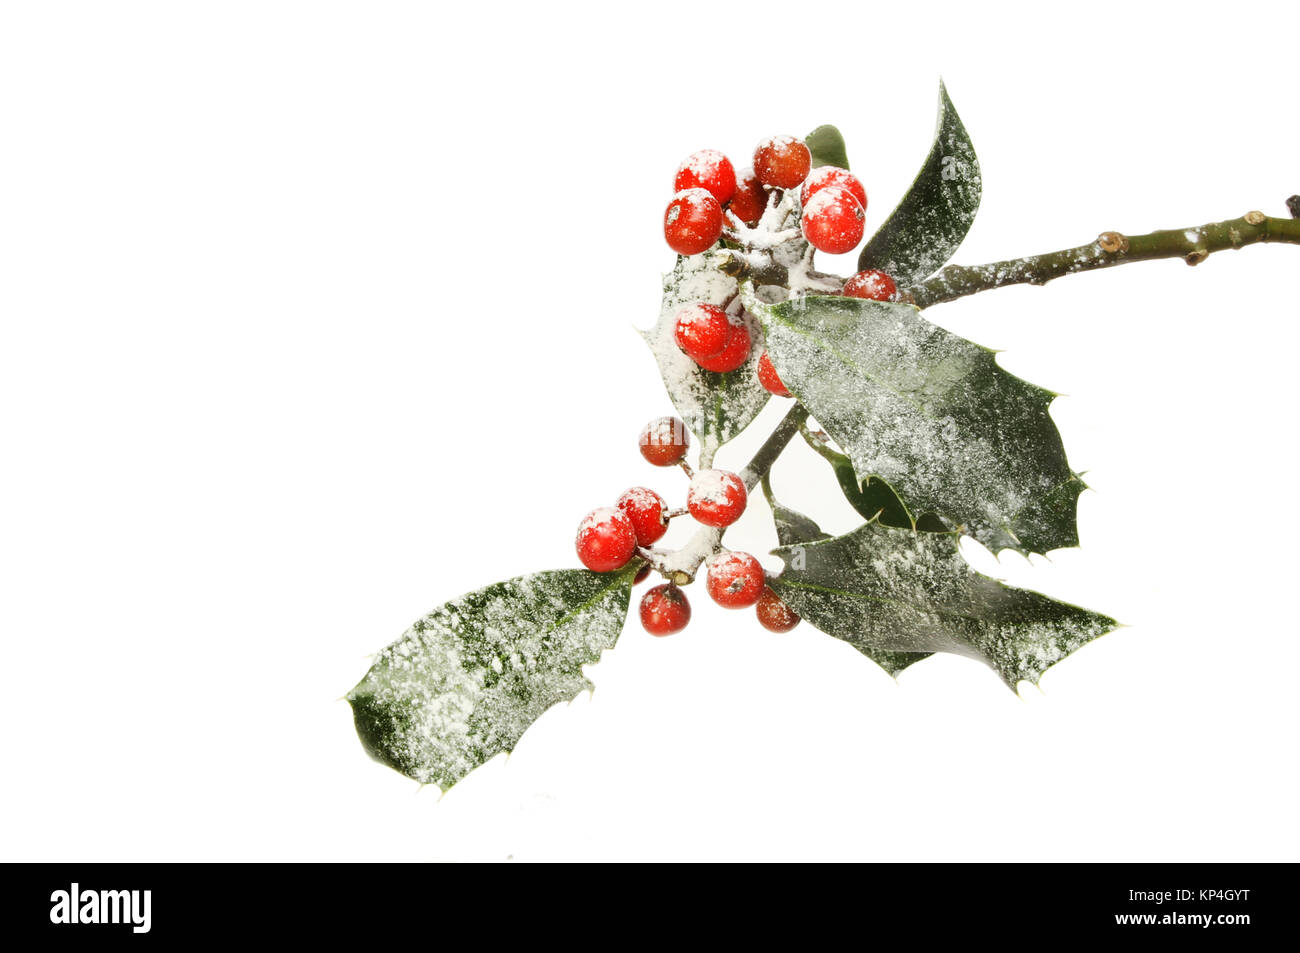 Snow dusted holly with ripe red berries isolated against white - Stock Image